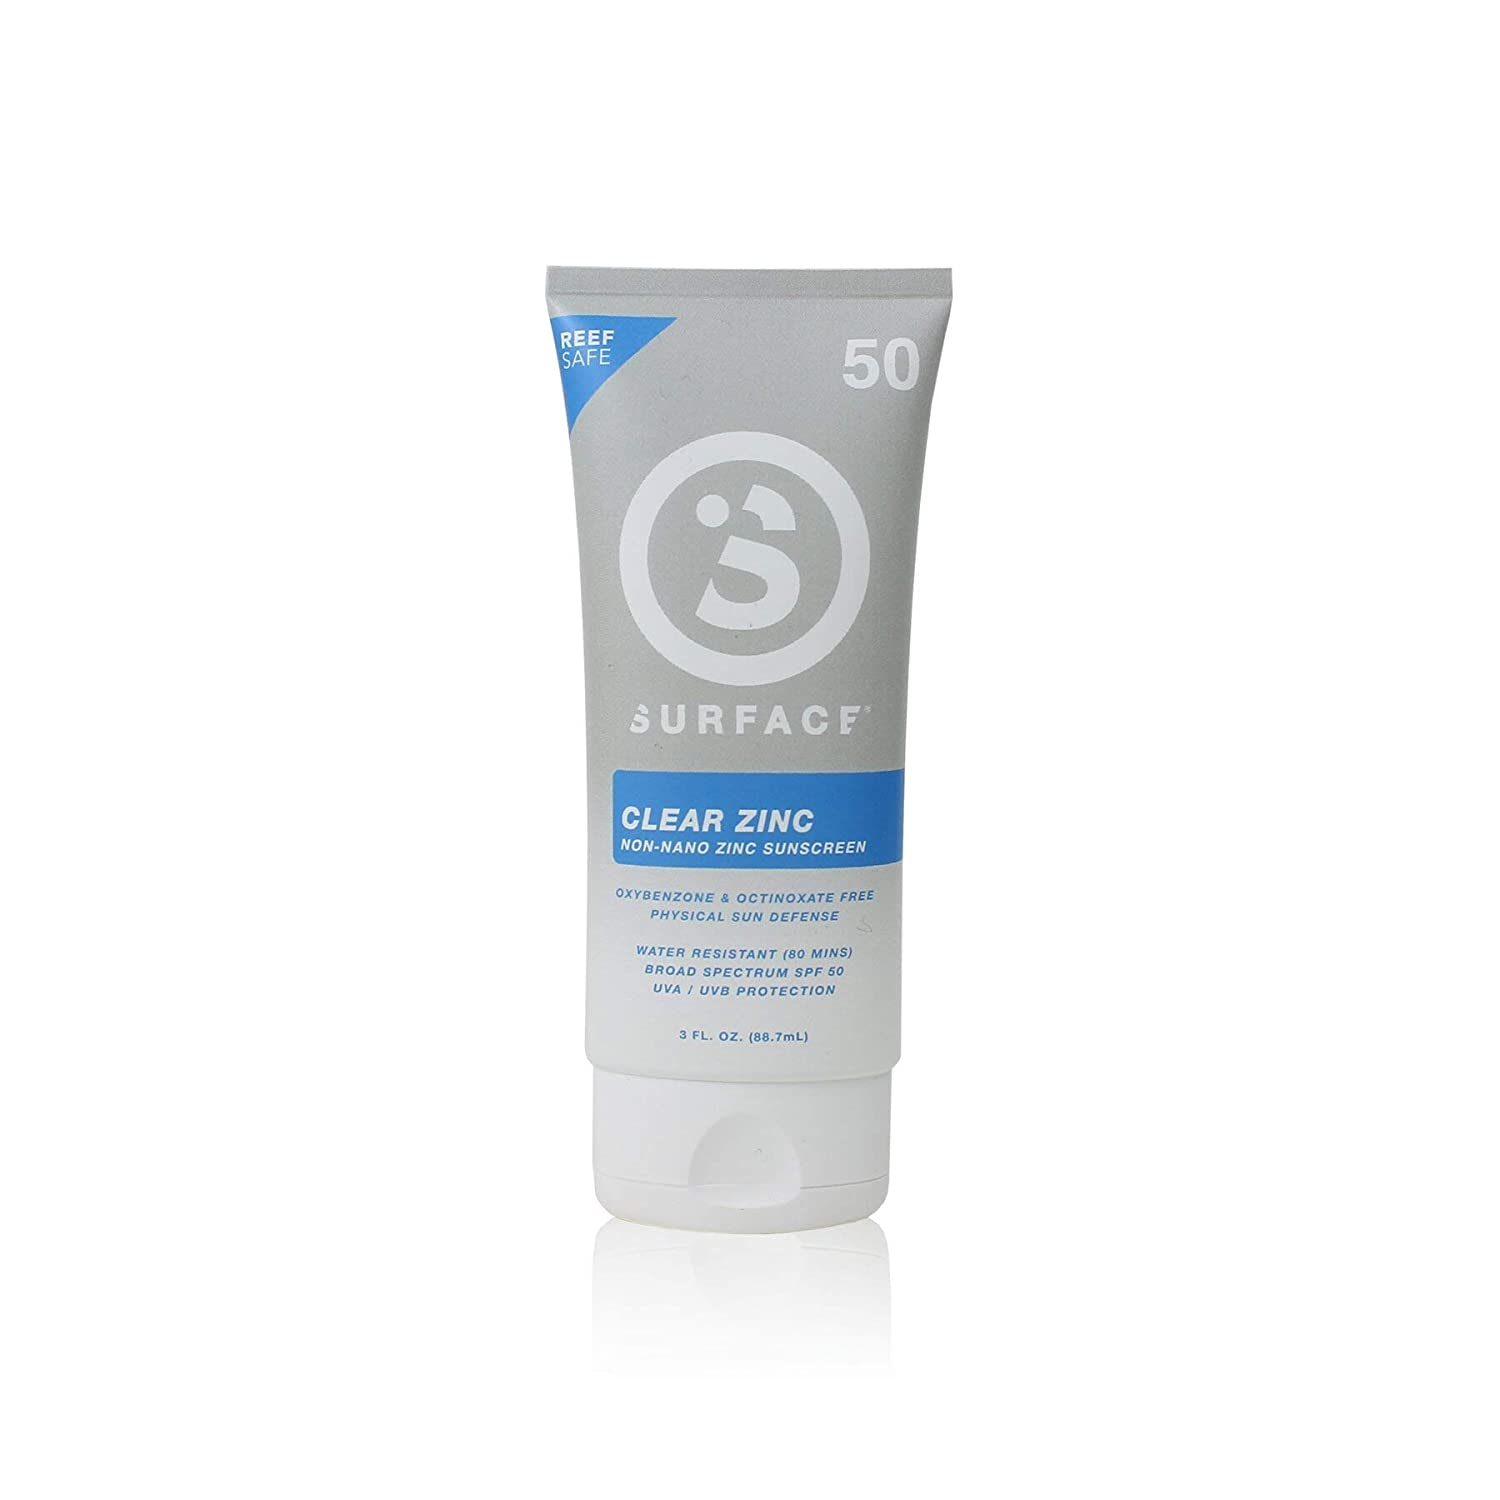 Surface Clear Zinc Sunscreen Lotion - Reef Safe, Broad Spectrum UVA/UVB Protection, Physical Sun Protection, Cruelty Free, Hypoallergenic, Ultra Water Resistant - SPF 50, 3oz, 2 Count